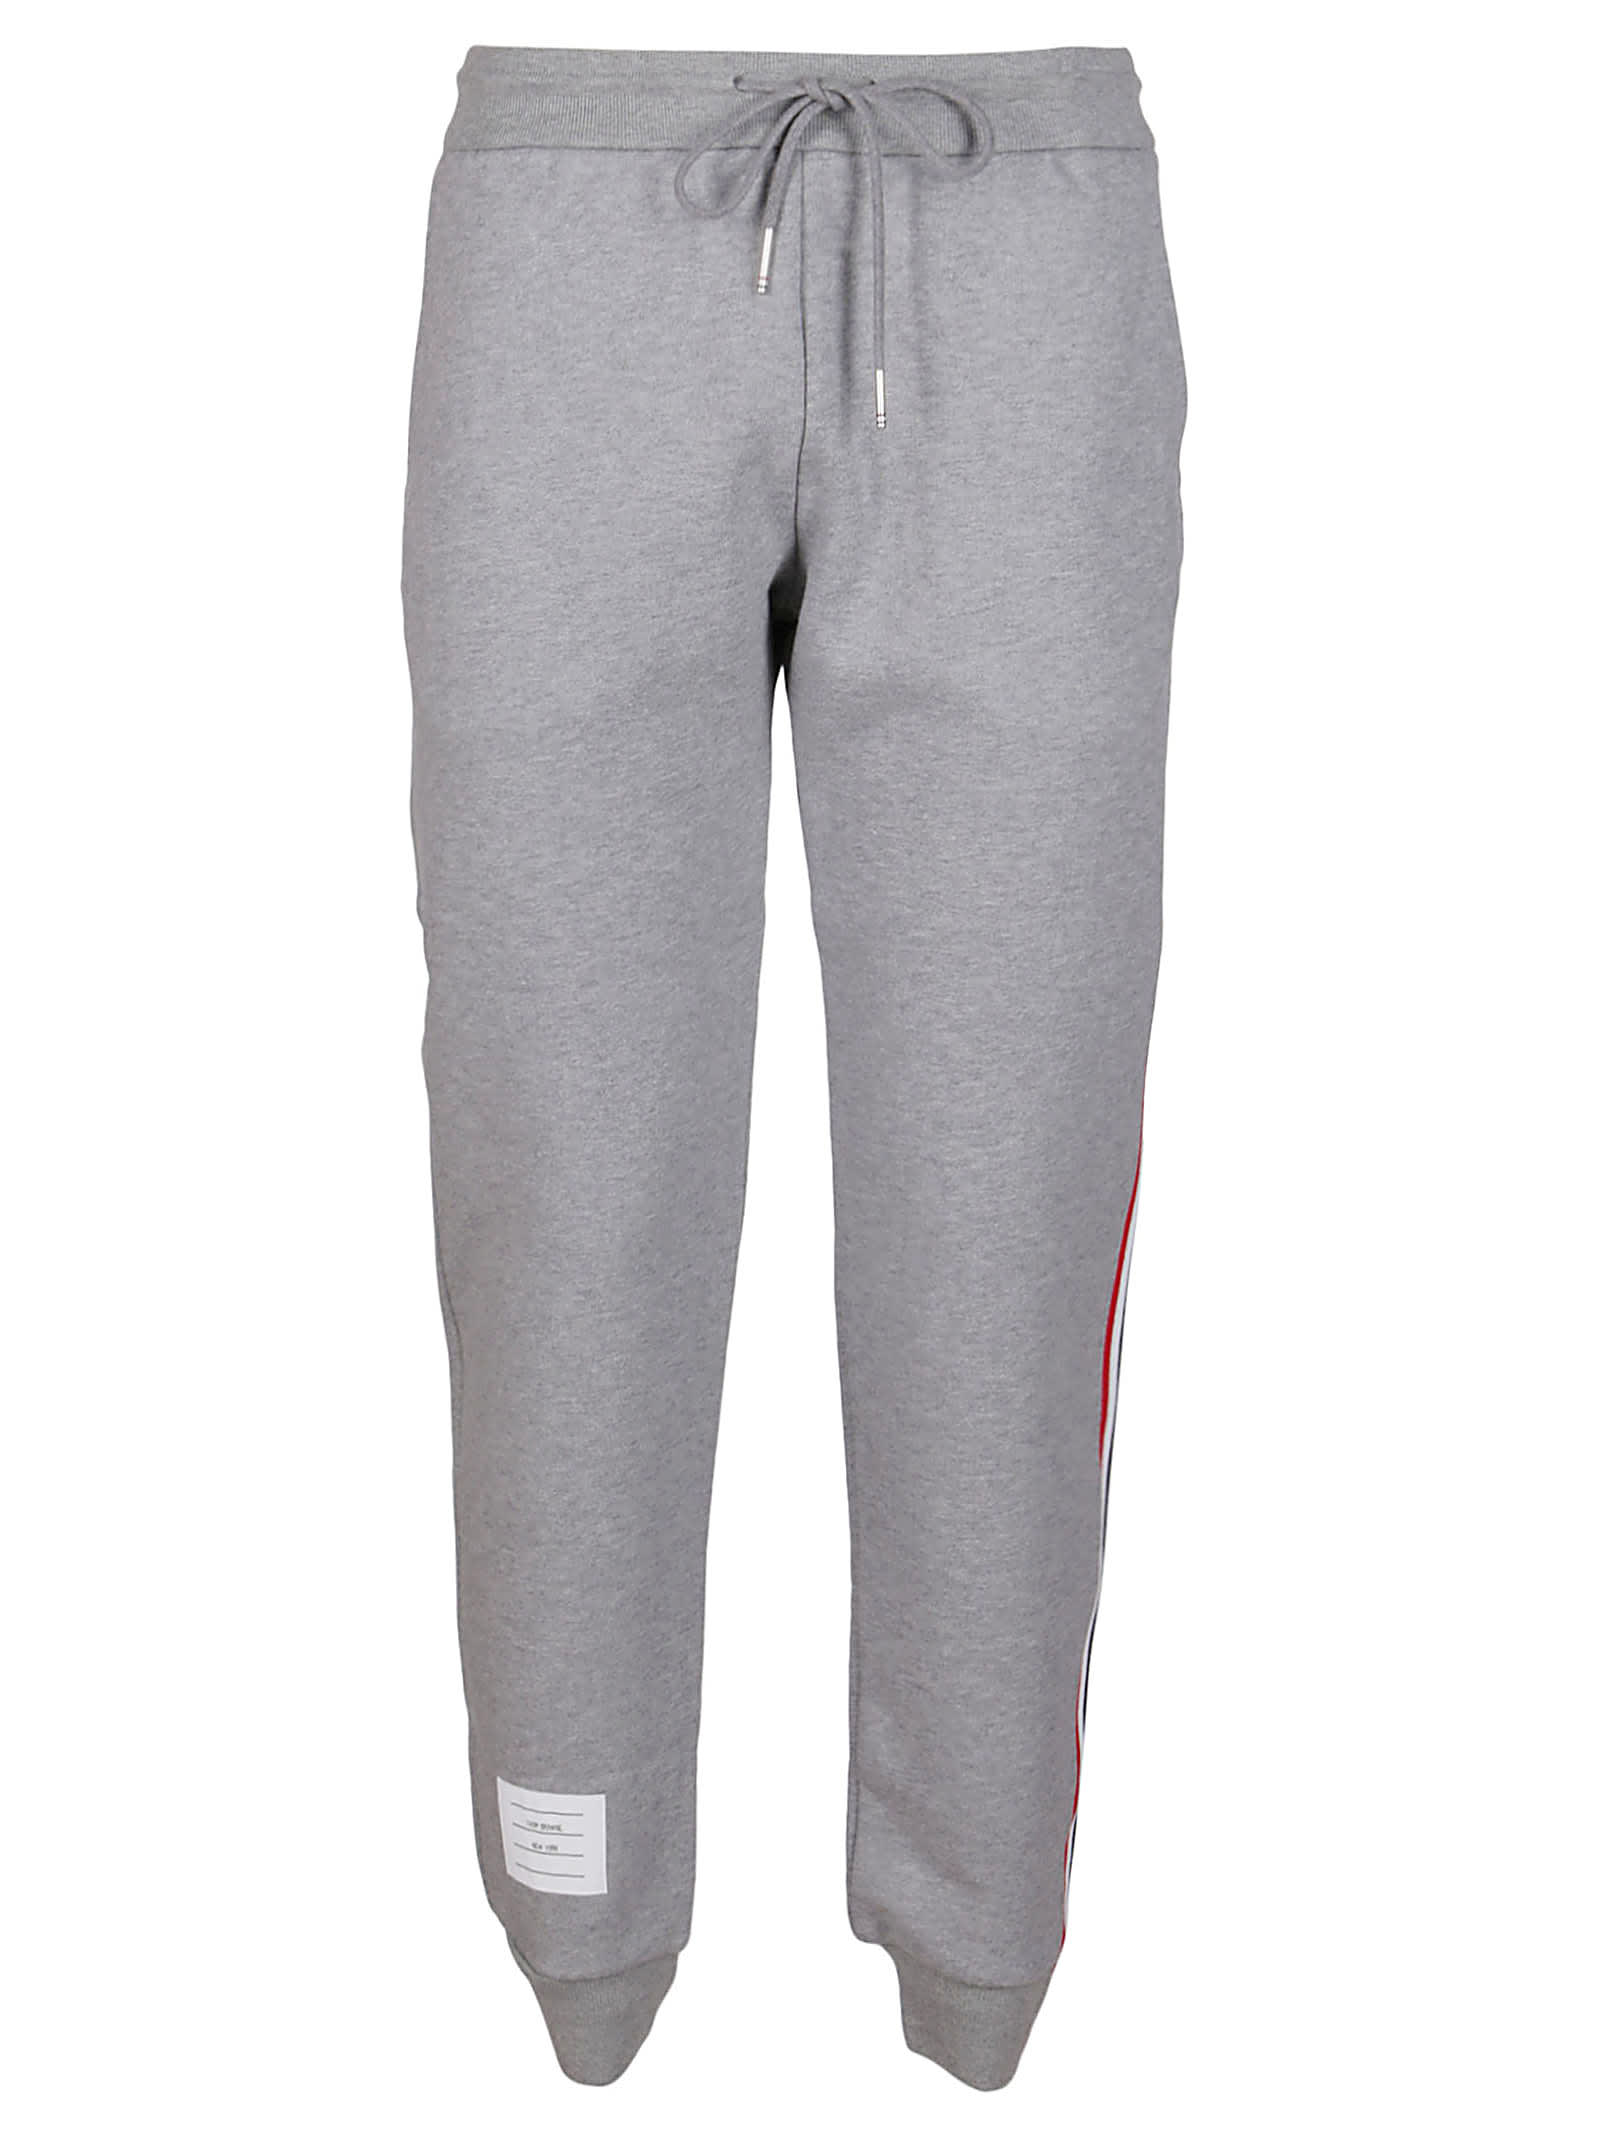 Thom Browne LIGHT GREY COTTON TRACK PANTS